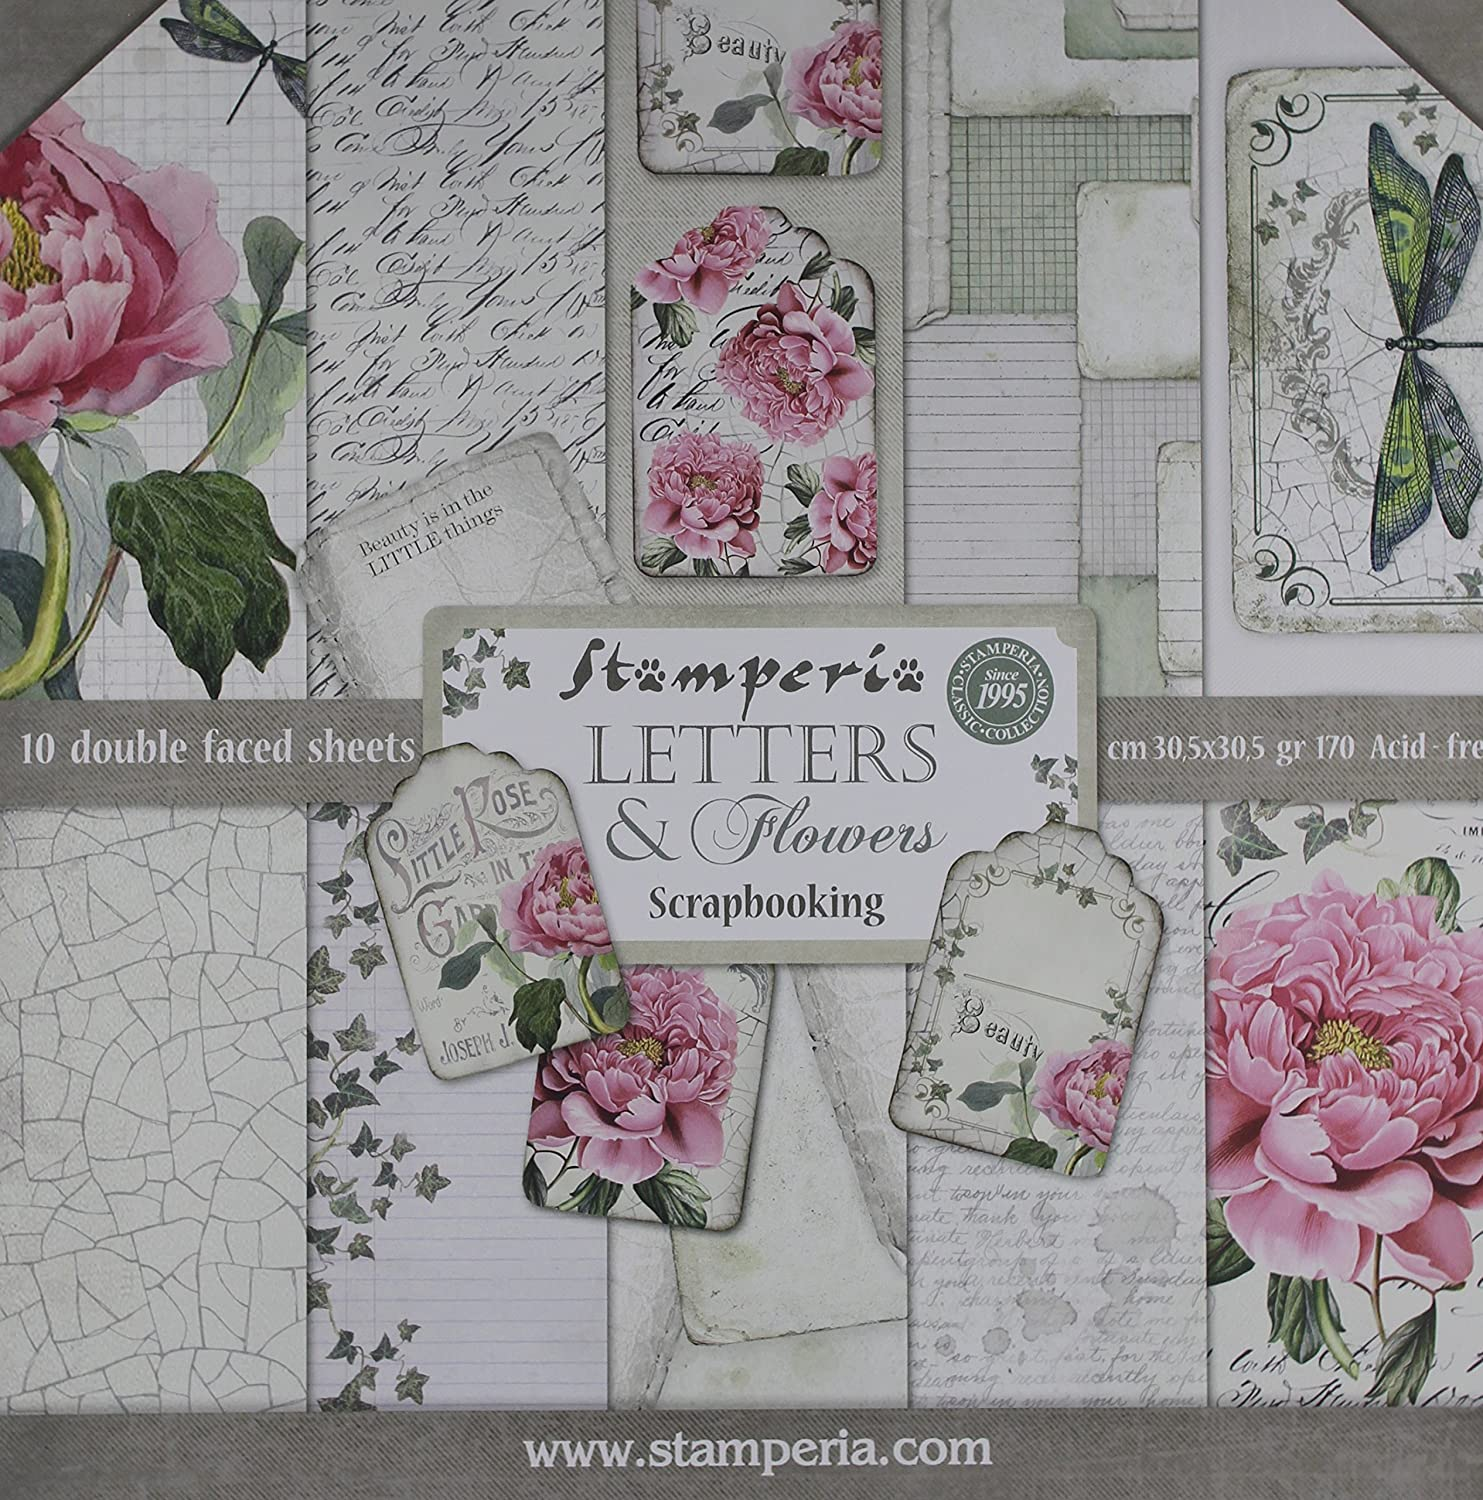 Stamperia Intl Letters & Flowers Double Sided Paper Pad (10/Pack), 12 x 12 12 x 12 SBBL22